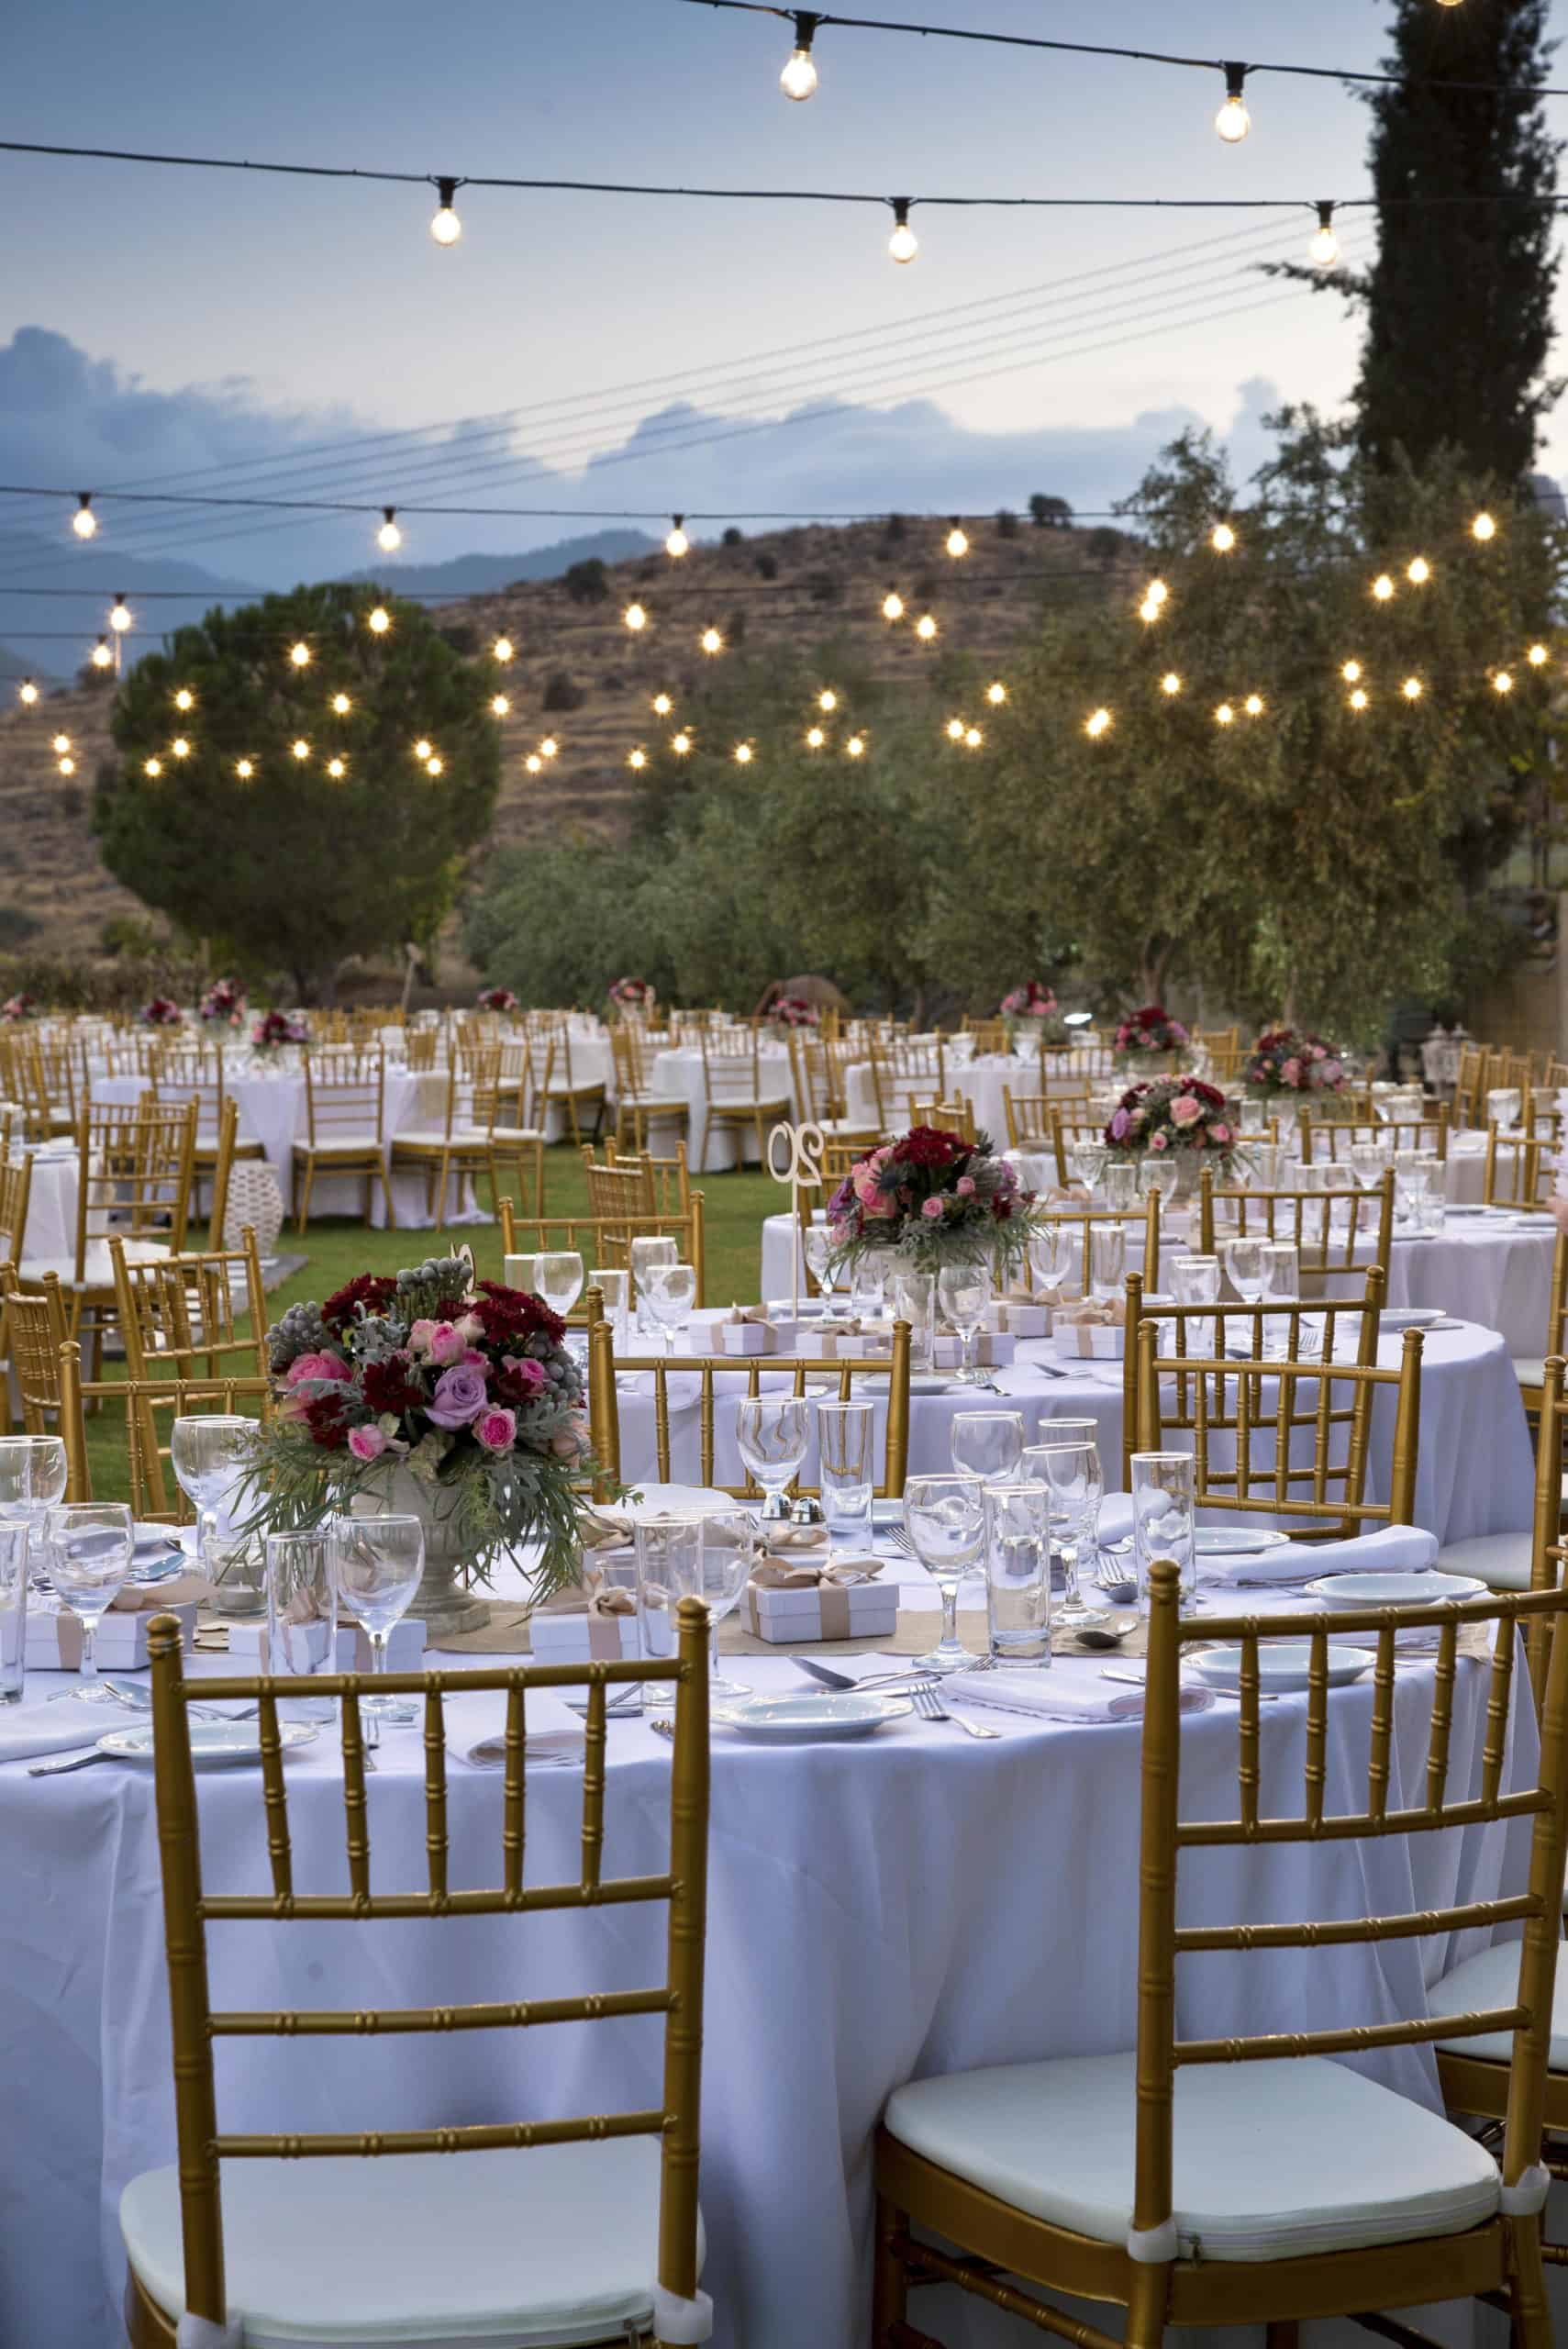 Tables and decorations shown by Aes Ambelis winery for wedding receptions.